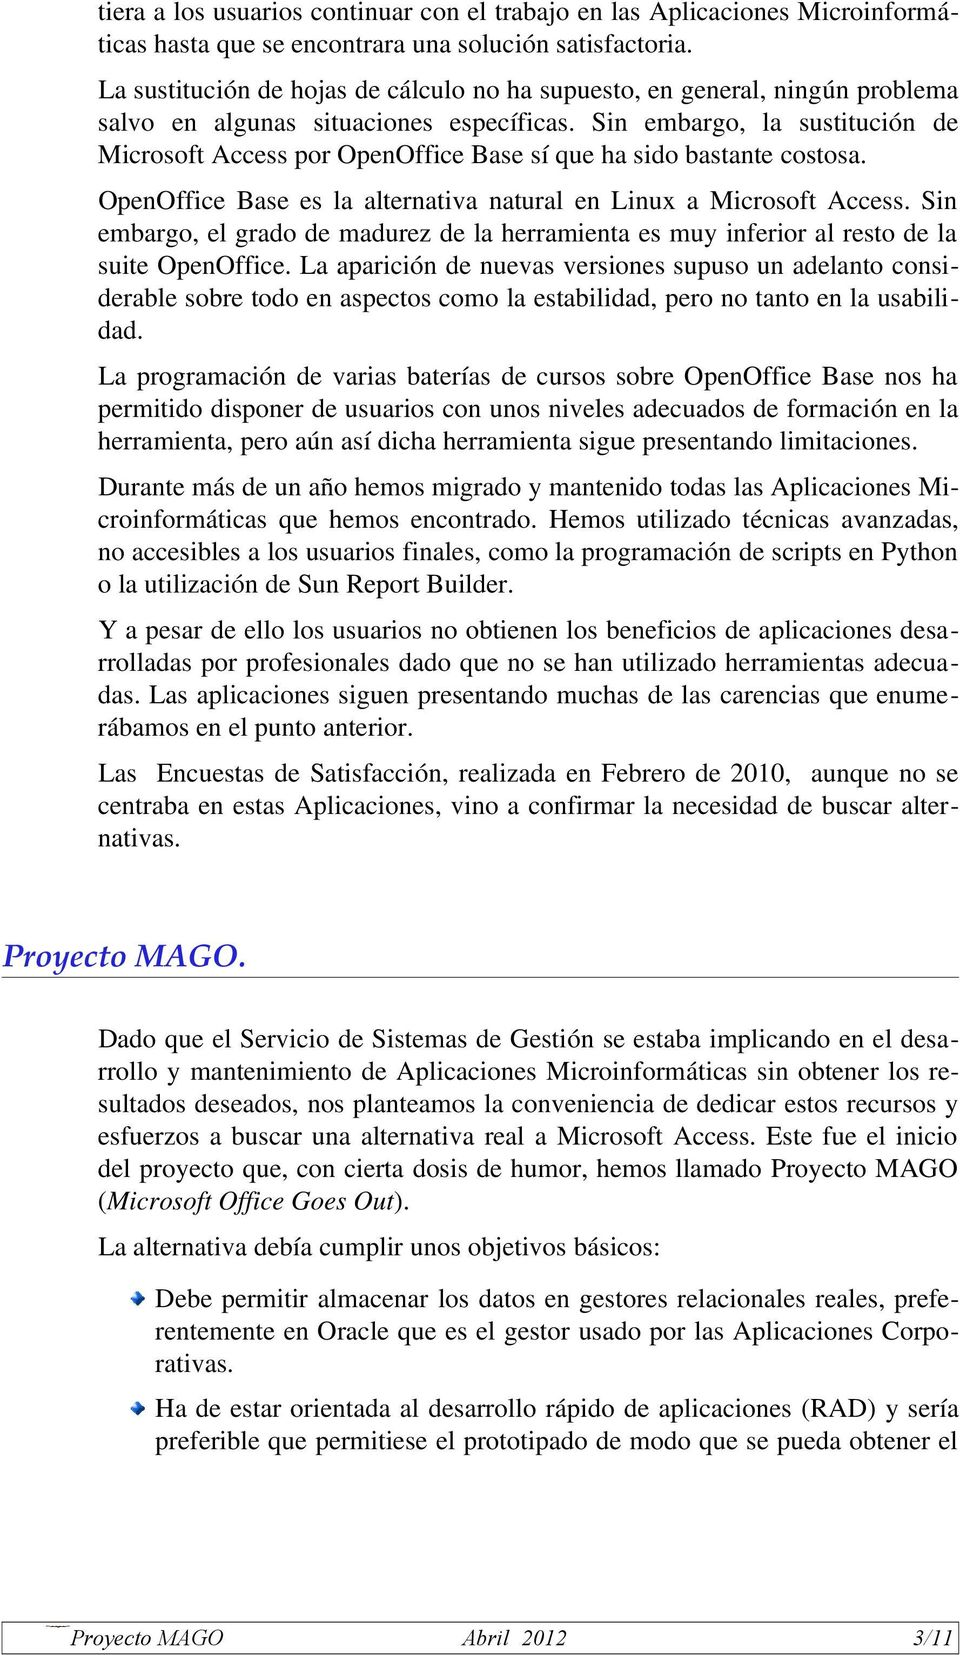 Sin embargo, la sustitución de Microsoft Access por OpenOffice Base sí que ha sido bastante costosa. OpenOffice Base es la alternativa natural en Linux a Microsoft Access.